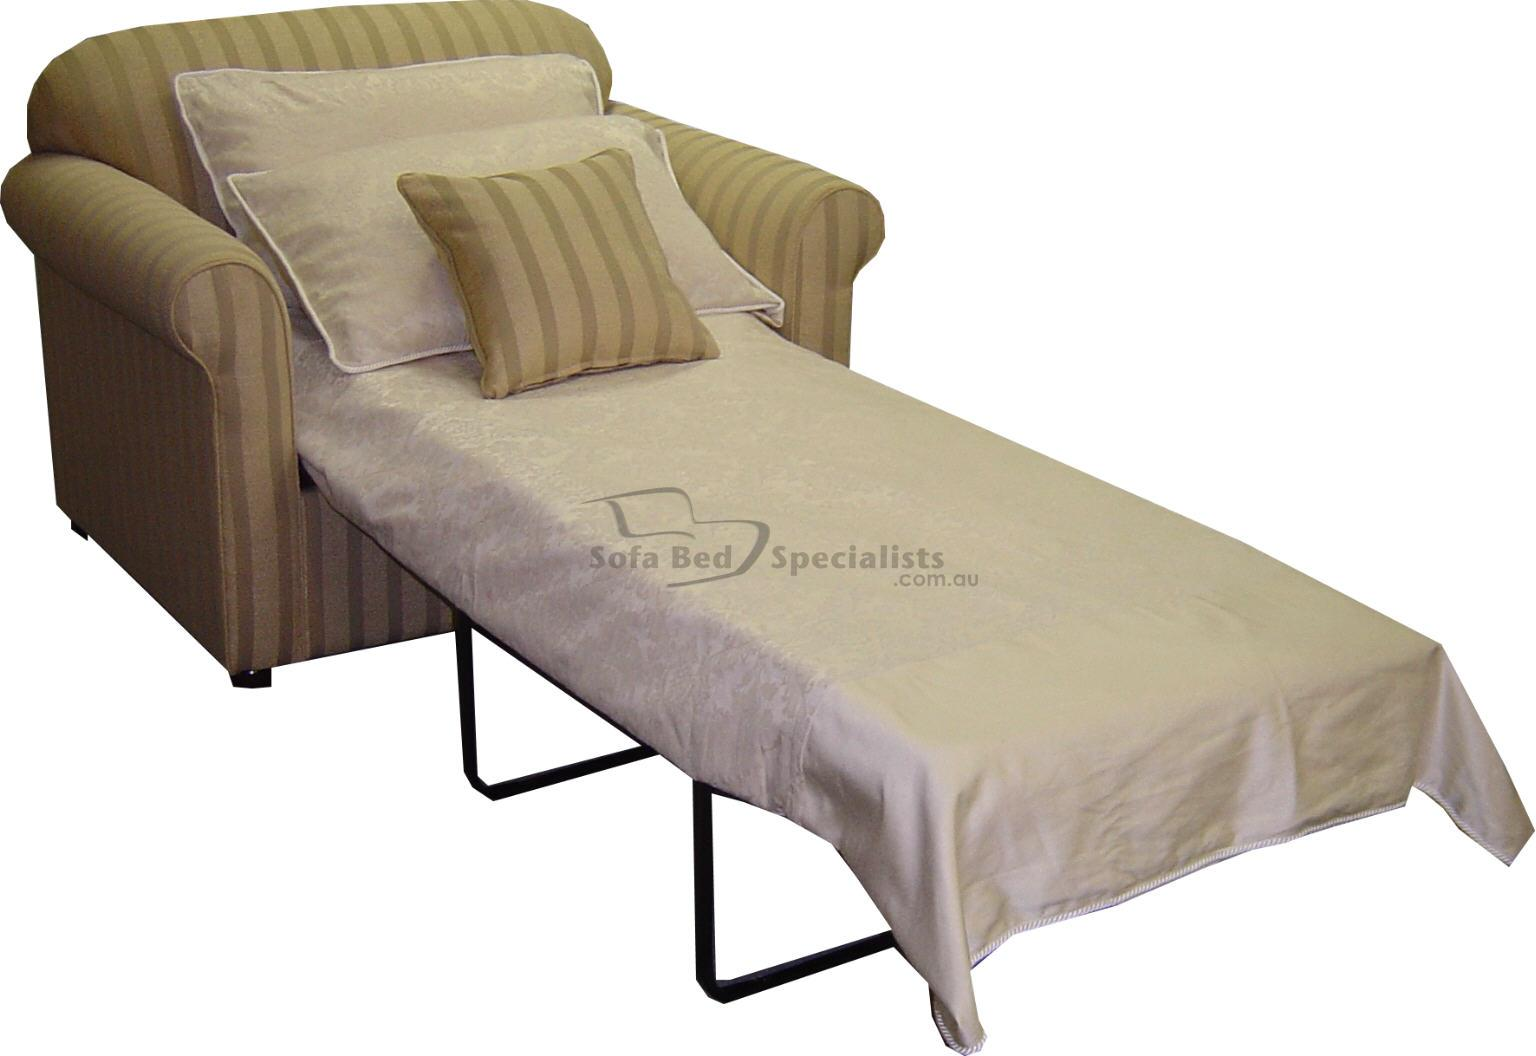 single fold out bed chair sofabed chair round arm